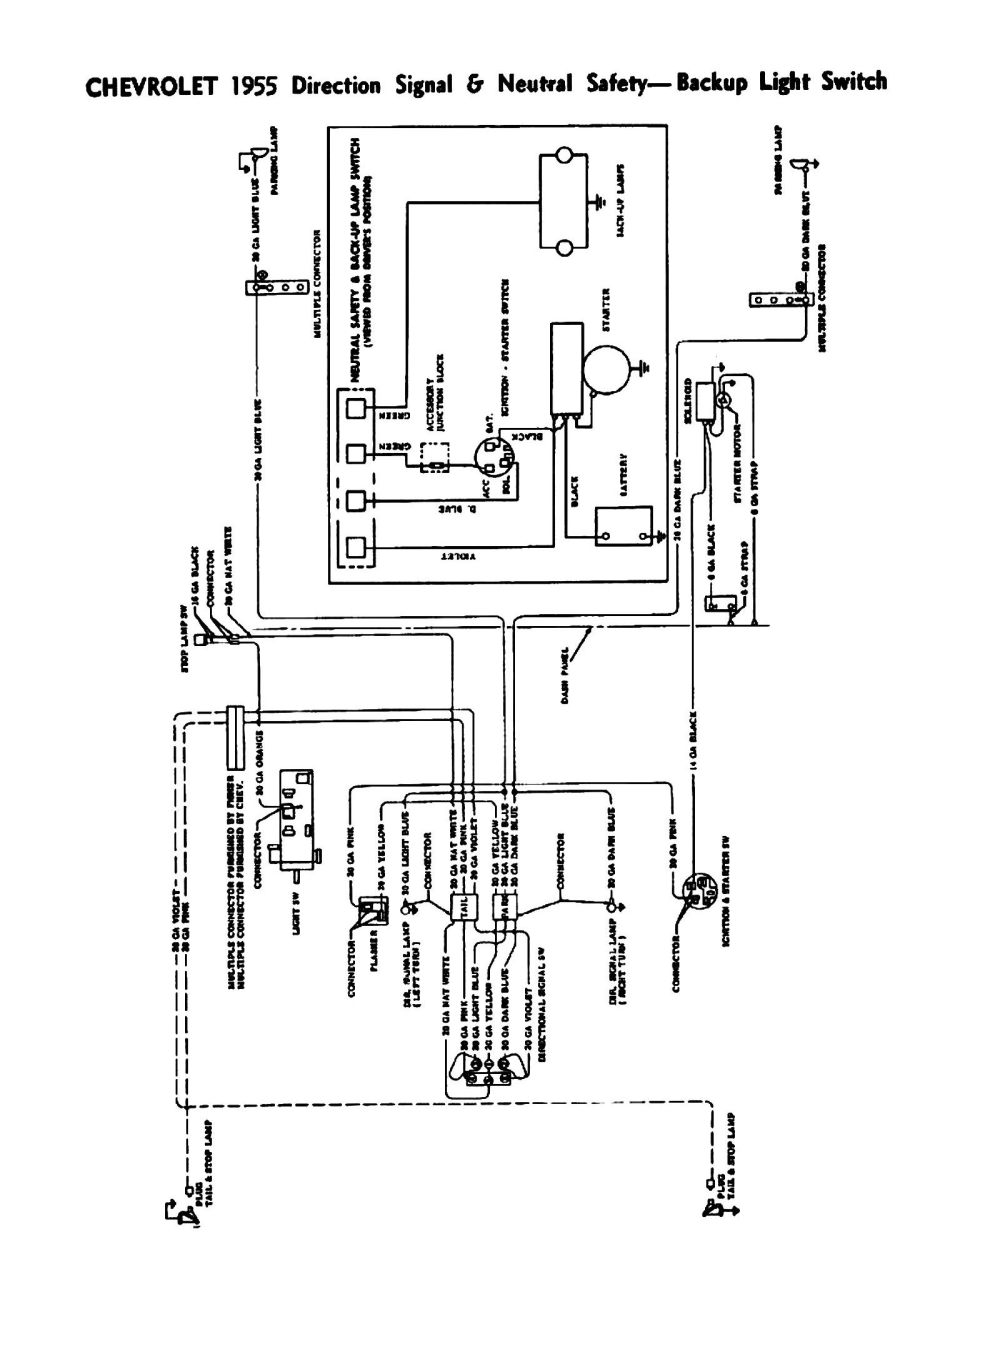 medium resolution of 55 chevy color wiring diagram get free image about 89 chevy turn signal wiring 89 chevy